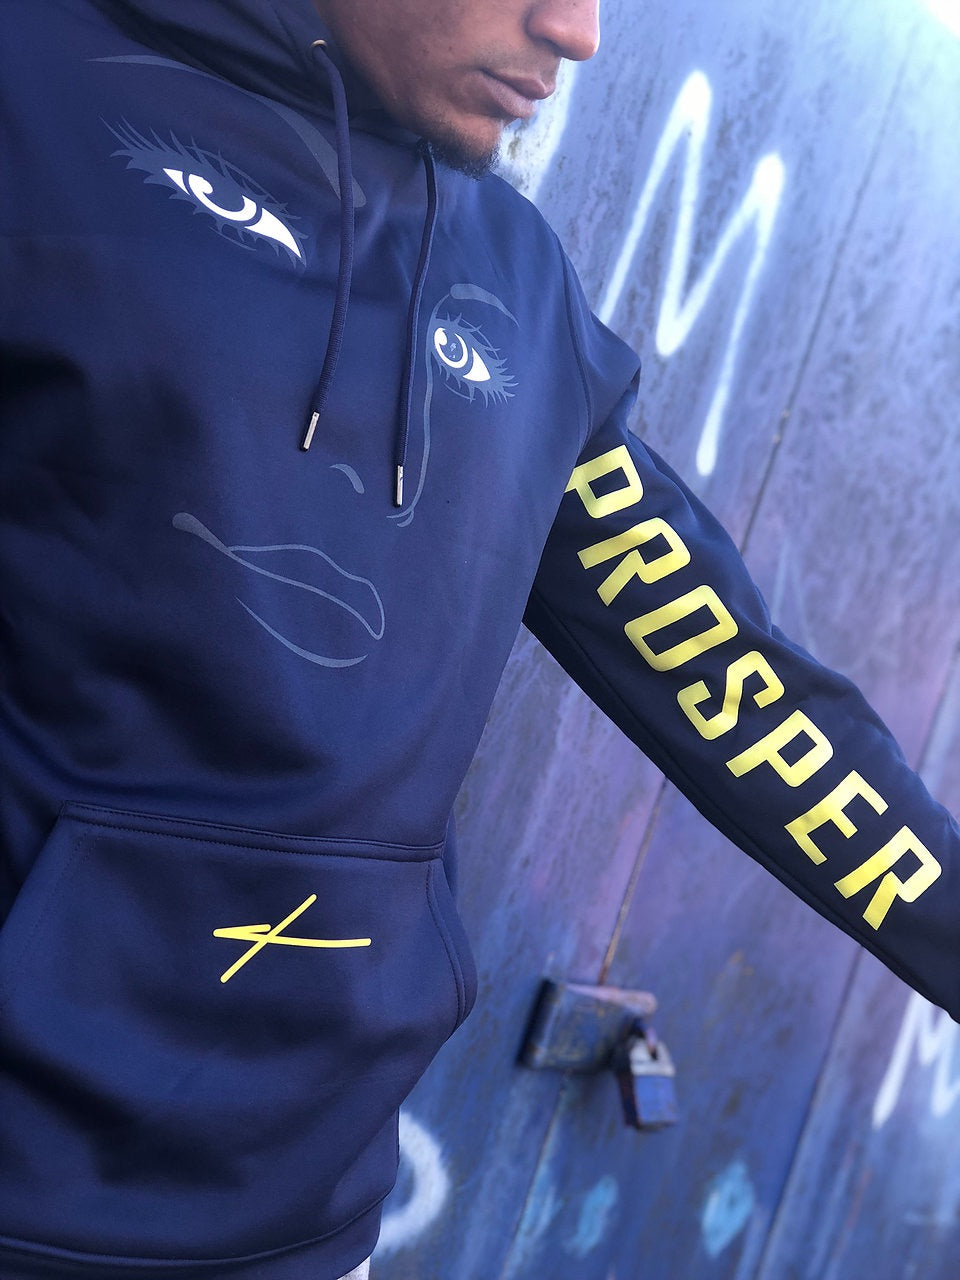 PROSPER | ALL EYES ON ME HOODIE - NAVY BLUE